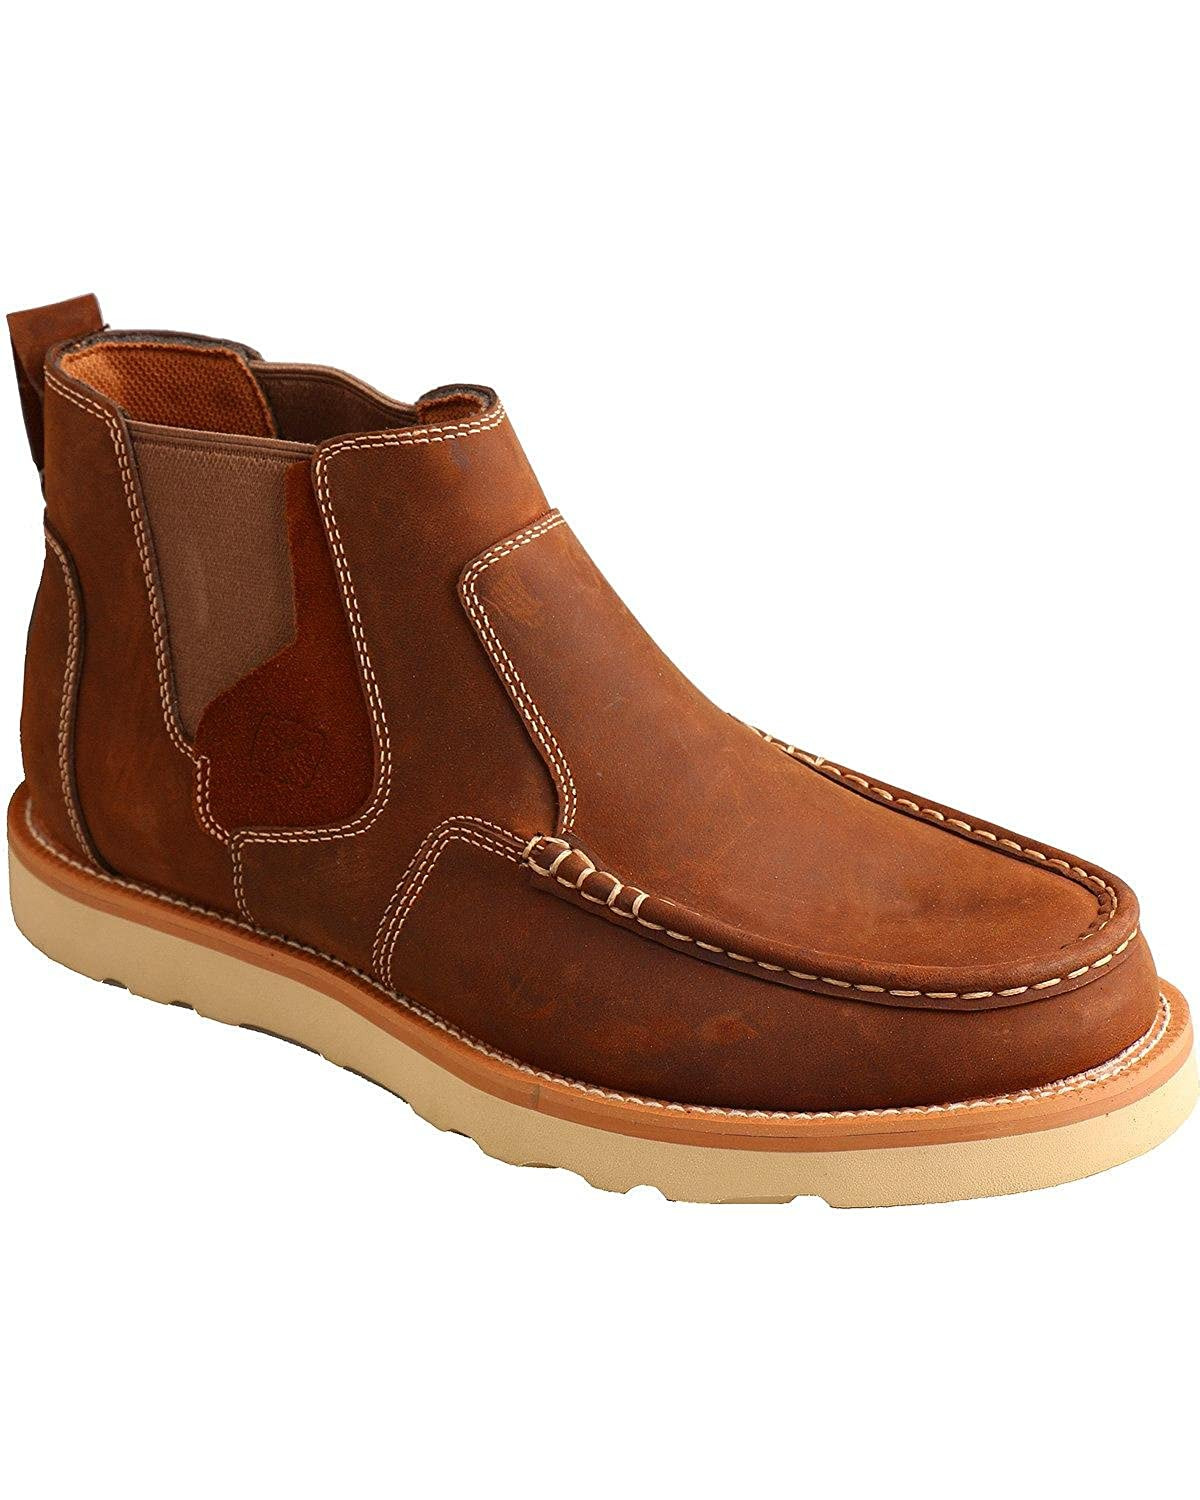 Twisted X Men's Casual Pull-On Shoes Moc Toe - Mca0013